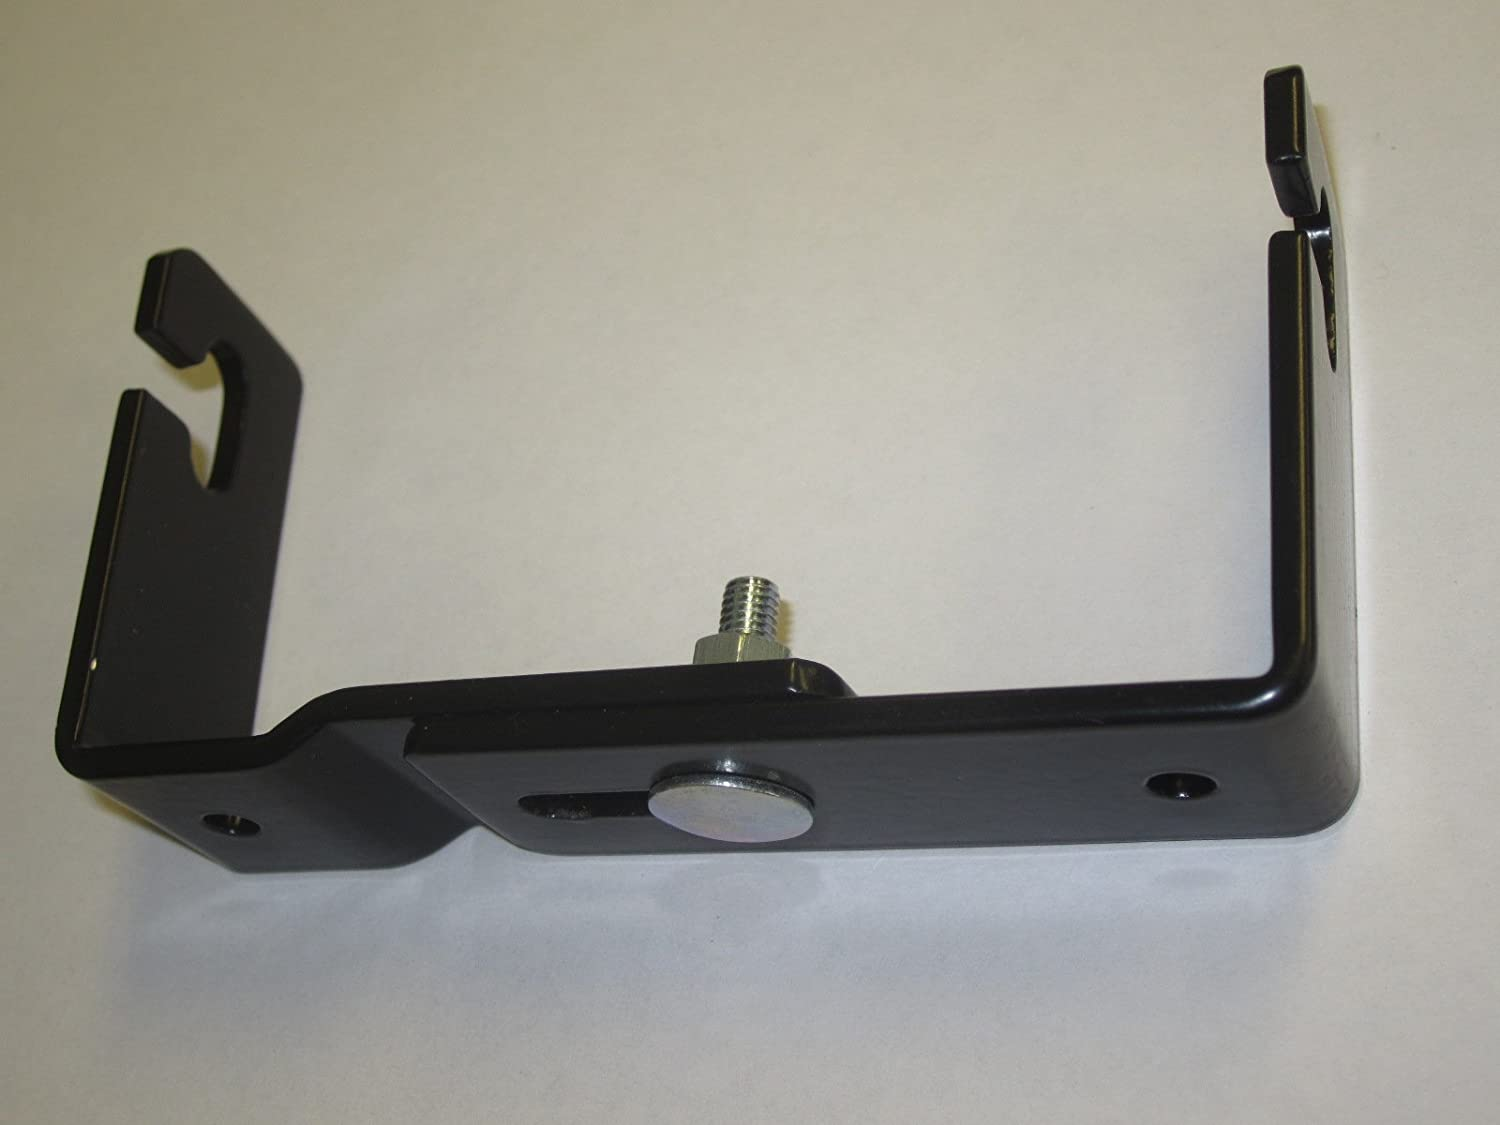 Workman C-523 CB Radio Mini Mounting Bracket With Quick Release Adjustable 3-3//4 to 4-3//4 wide